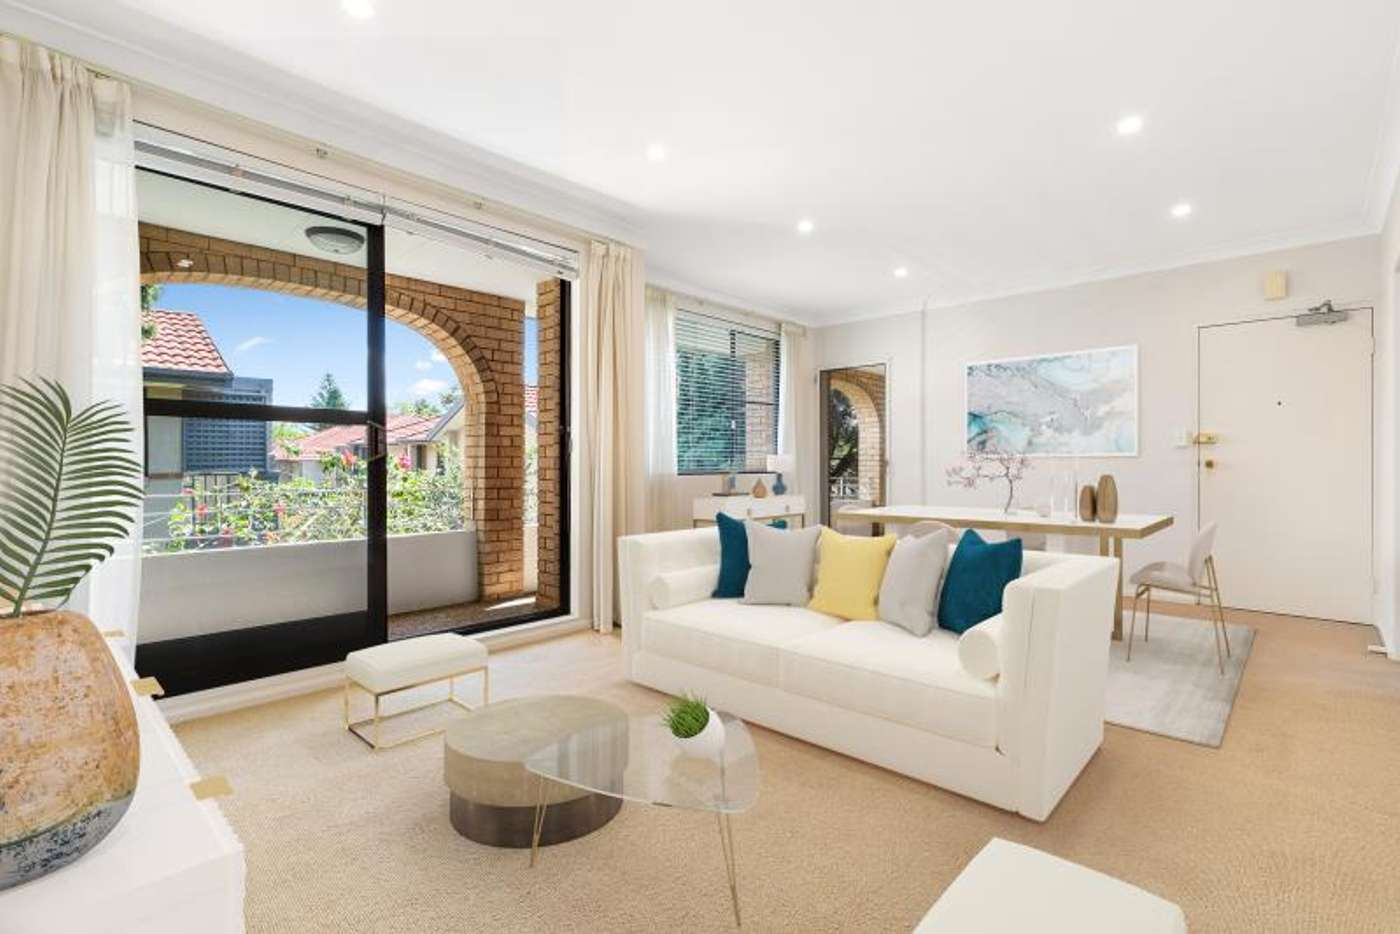 Main view of Homely apartment listing, 4 Beronga Street, North Strathfield NSW 2137